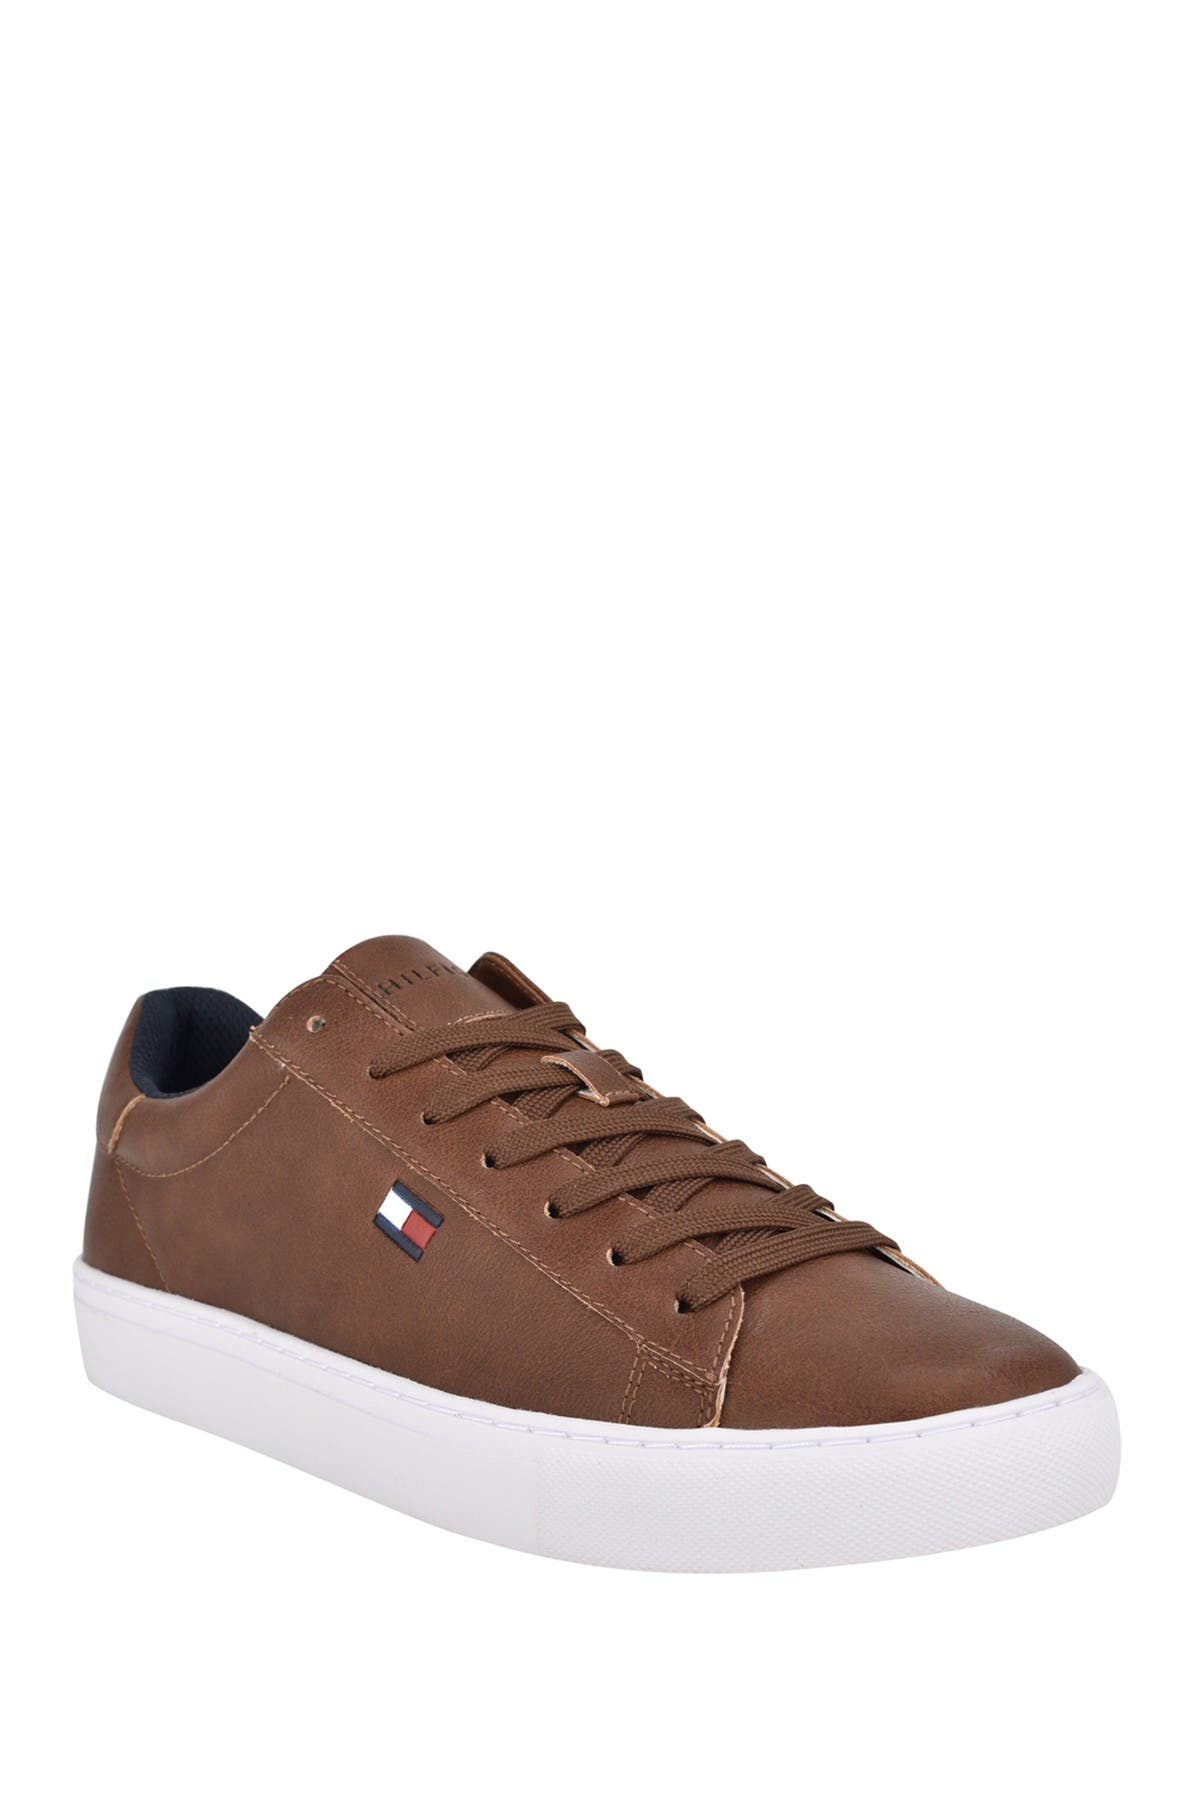 Tommy Hilfiger Low tops BRECON SIGNATURE SNEAKER